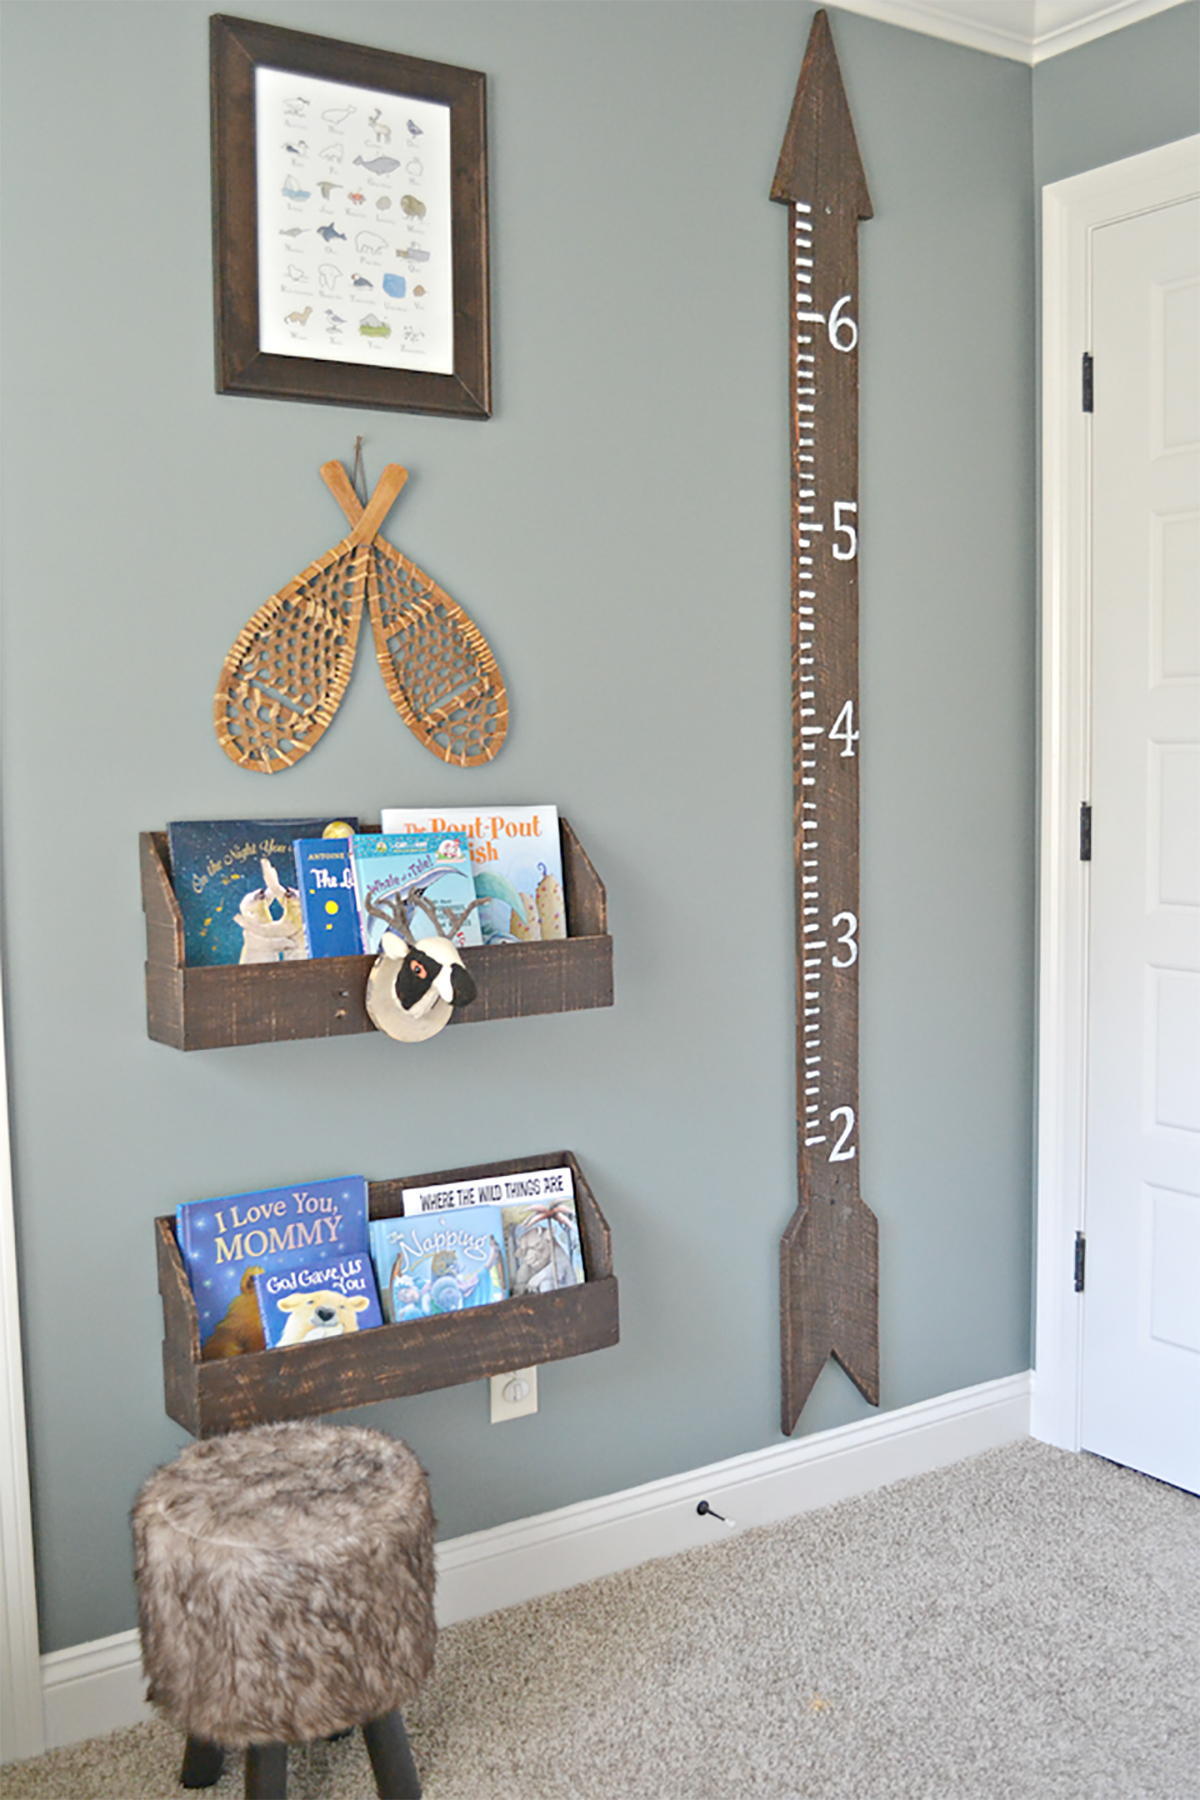 Baby Room Drawing: 17 Best Baby Room Decor Ideas